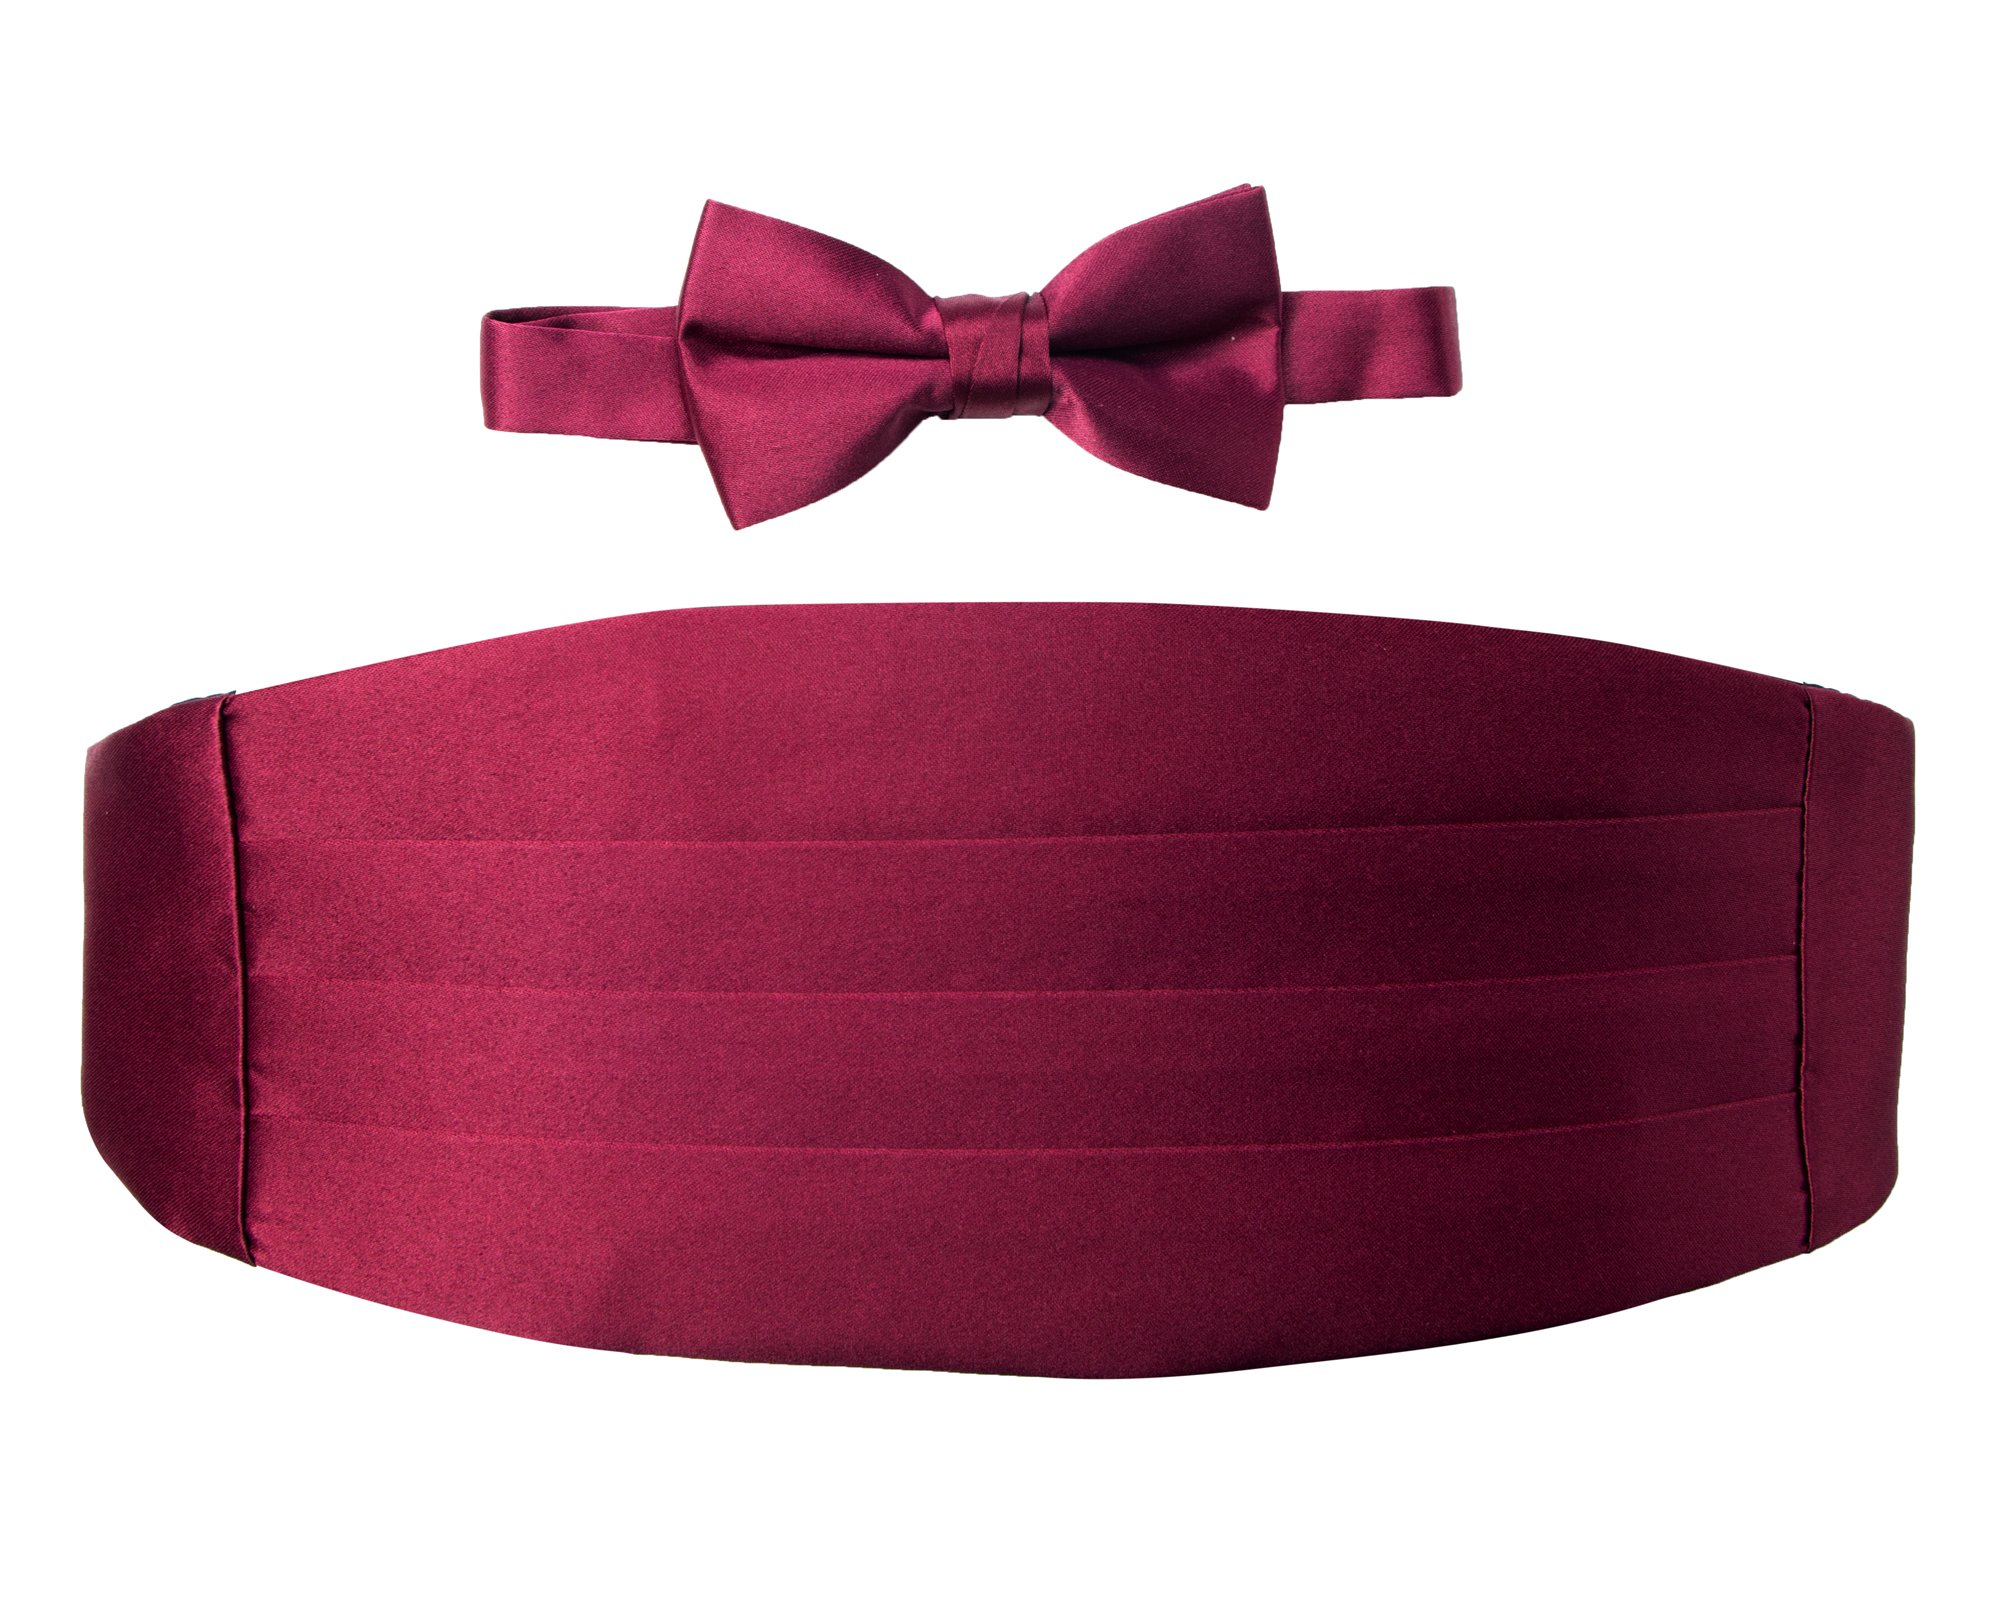 Spring Notion Boys' Black Classic Tuxedo with Tail Burgundy 4T by Spring Notion (Image #6)